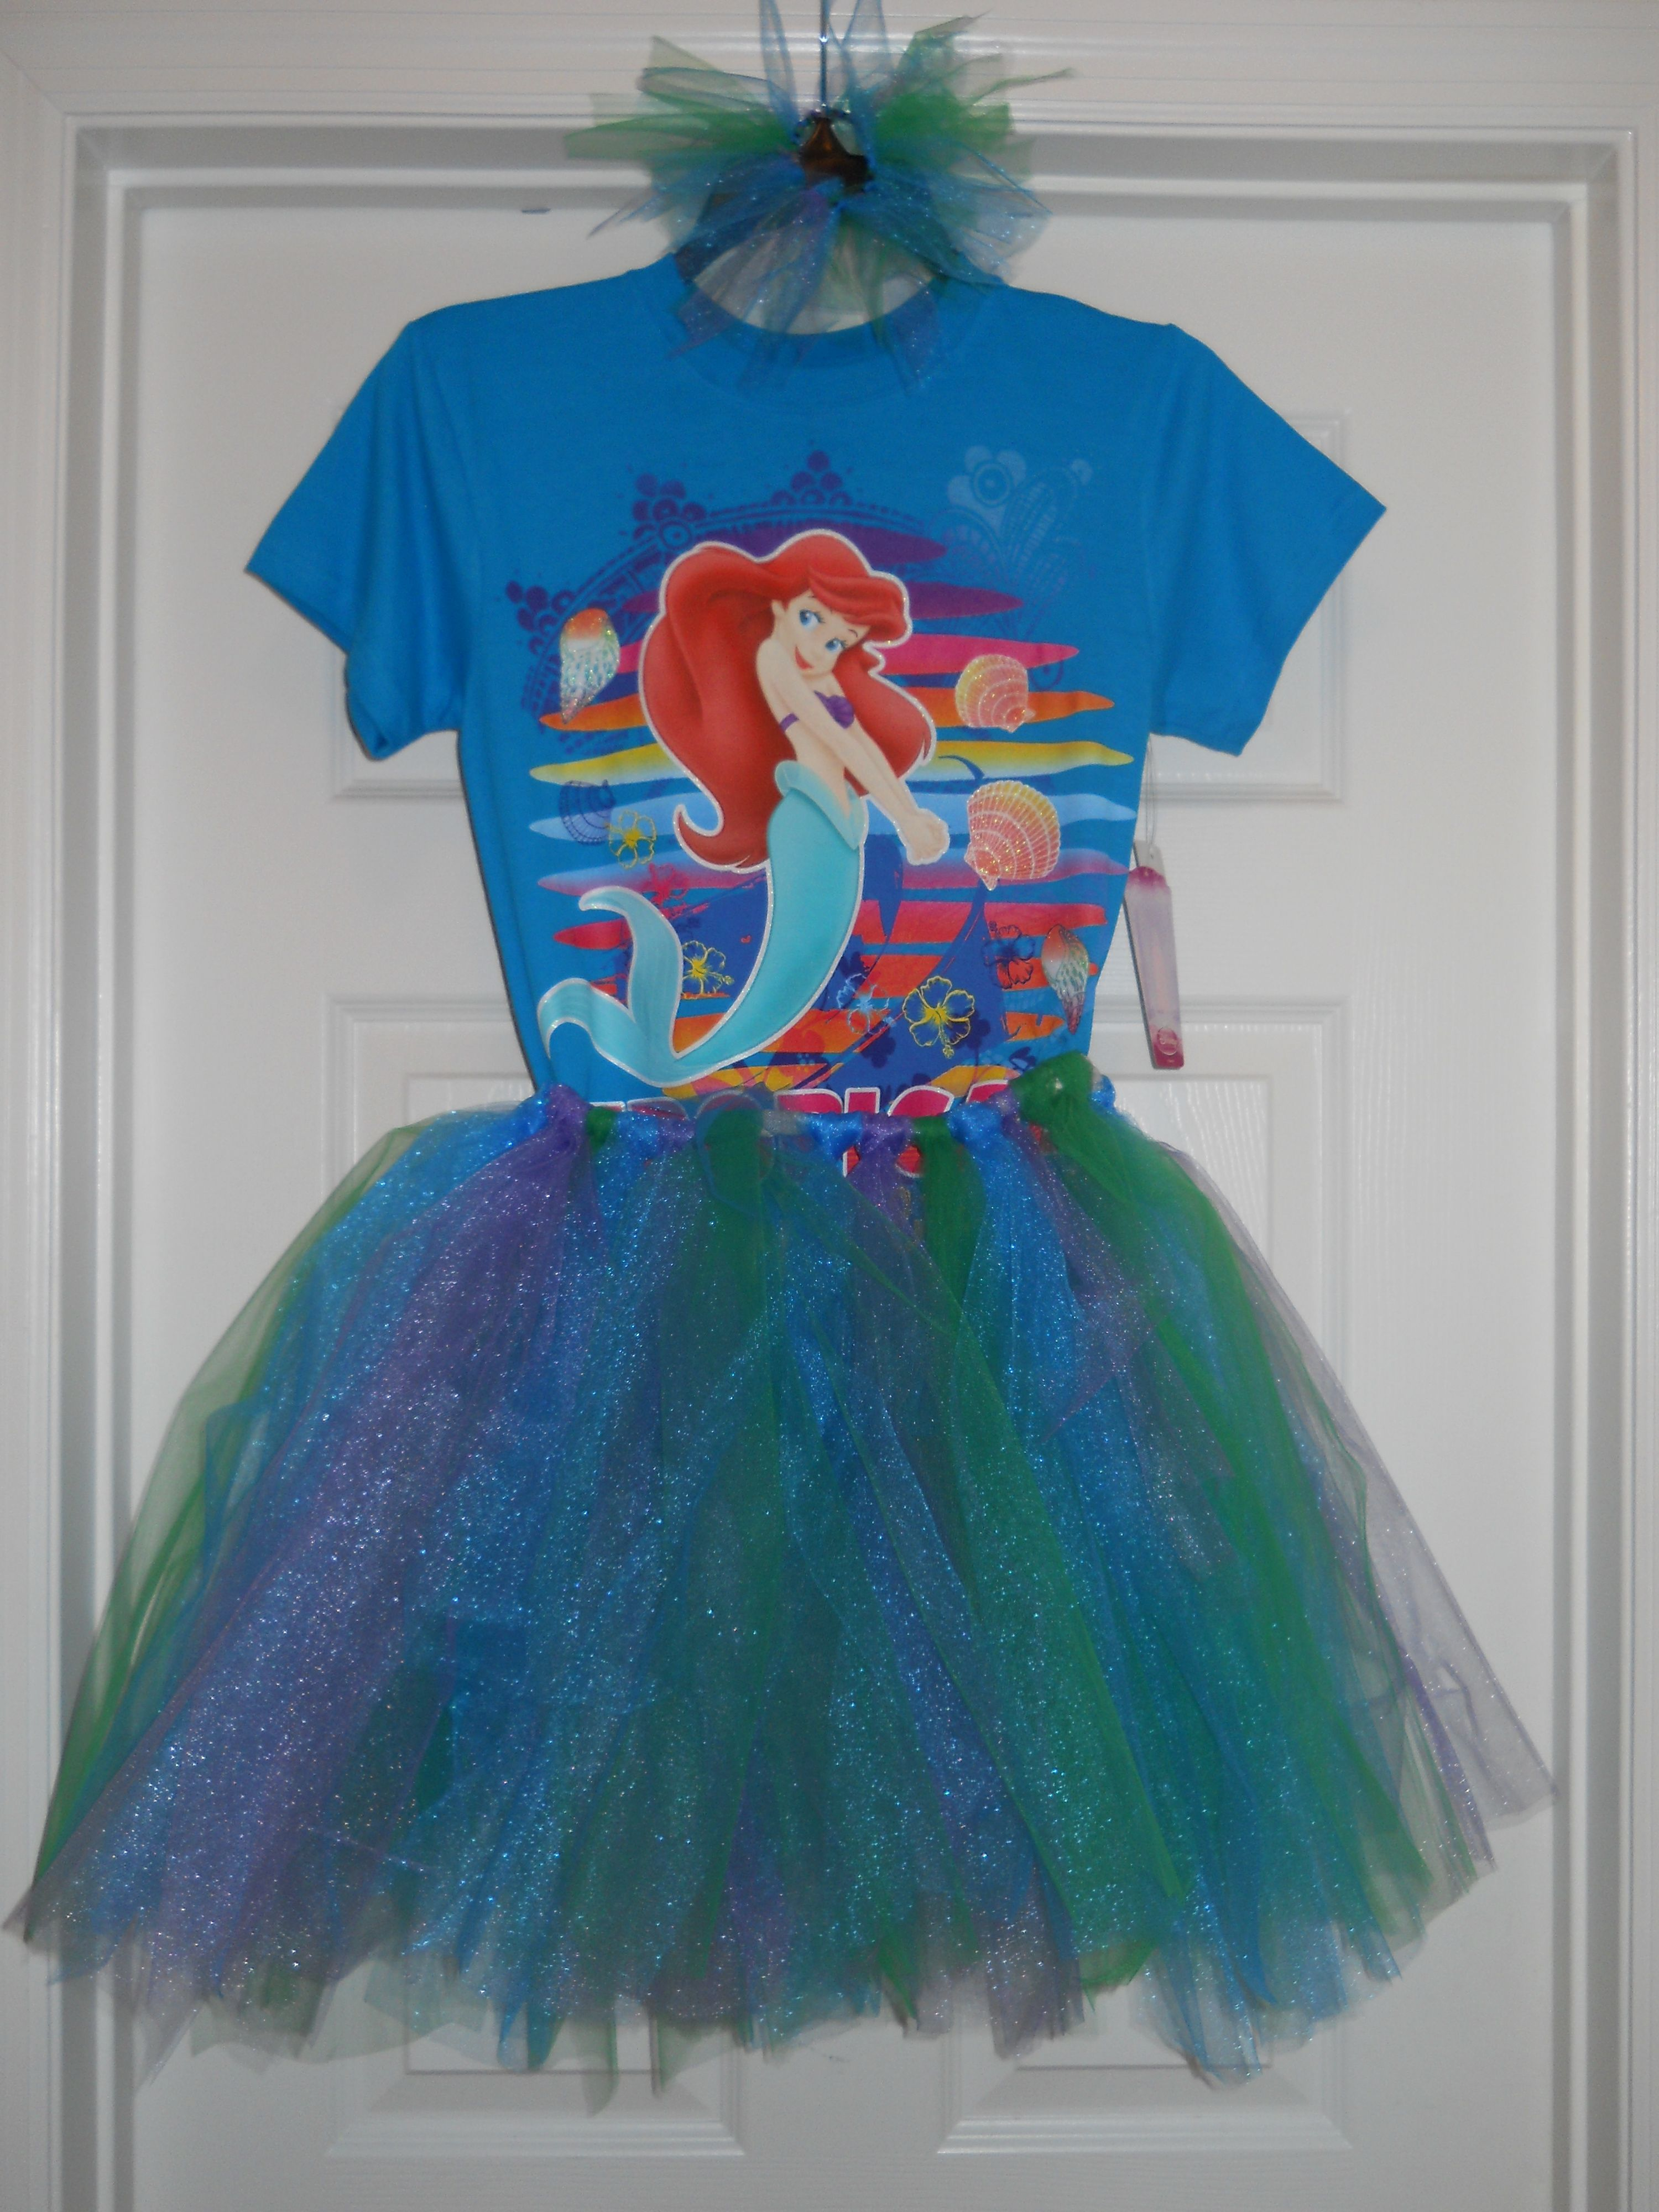 I made the tutu and bow!! This is for my niece when she comes to see me on set at Disney! We both LOVE Ariel.